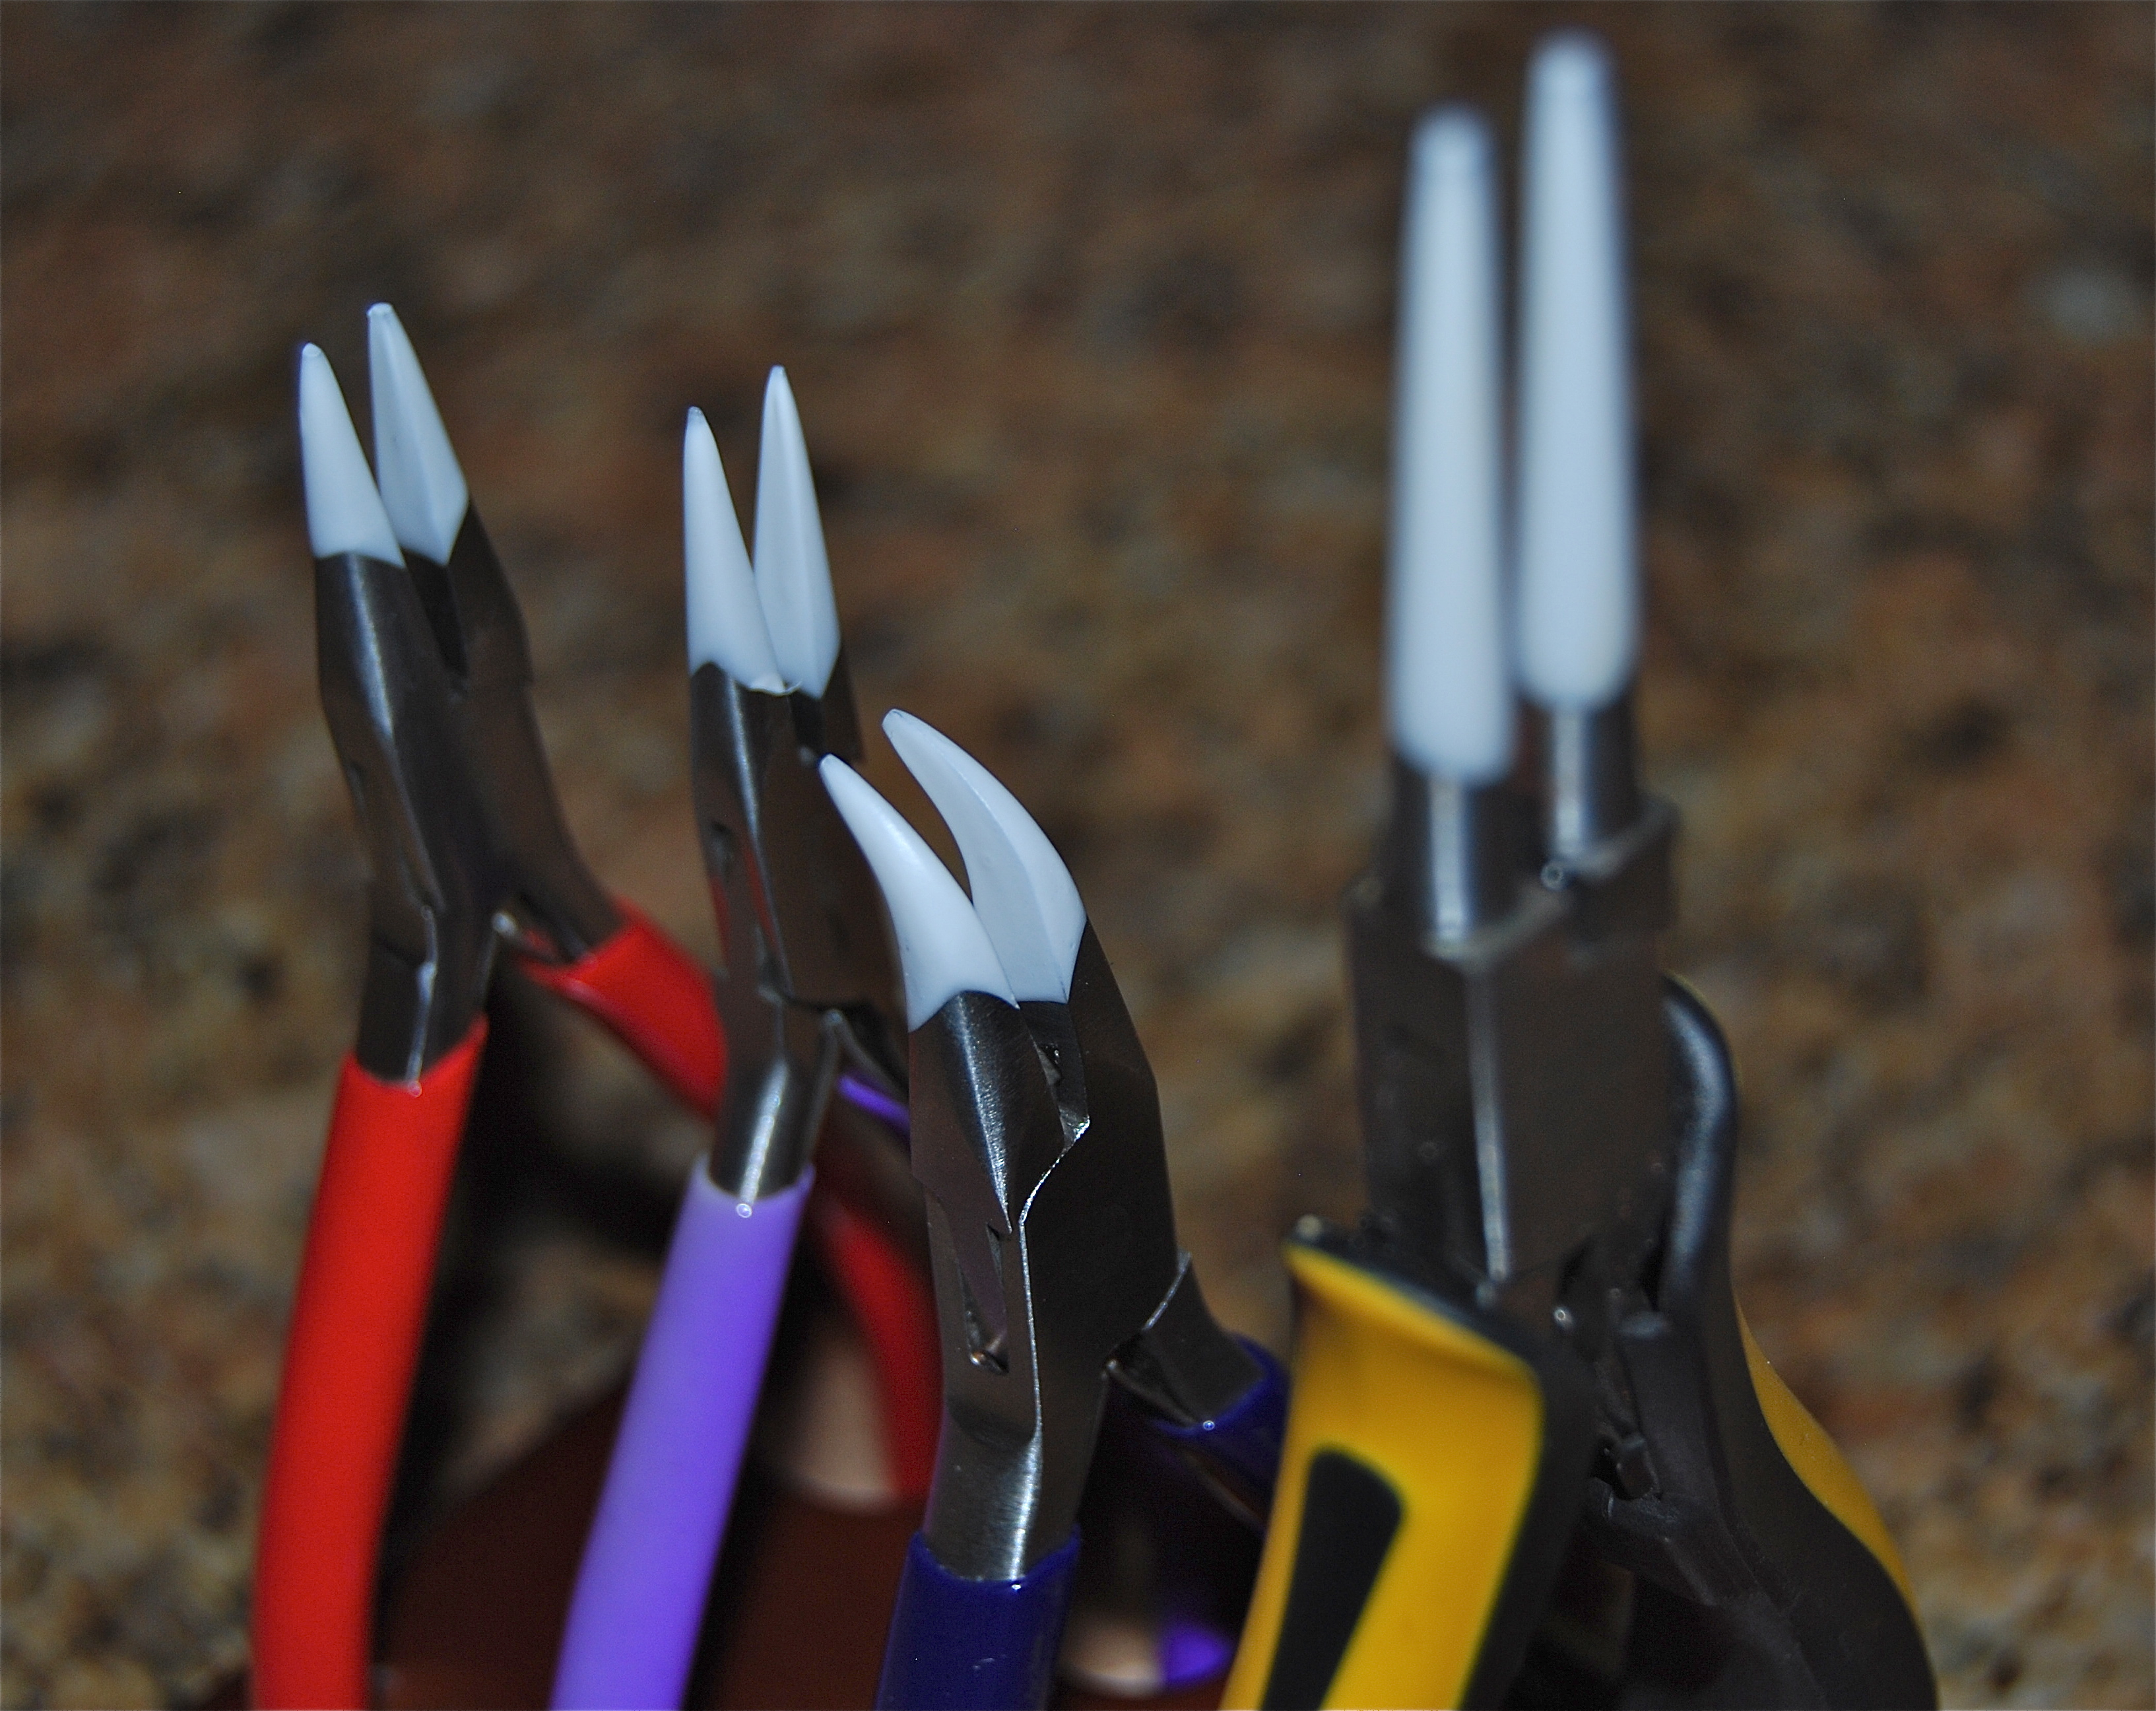 How To Keep Jewelry Tools From Scratching Your Metal